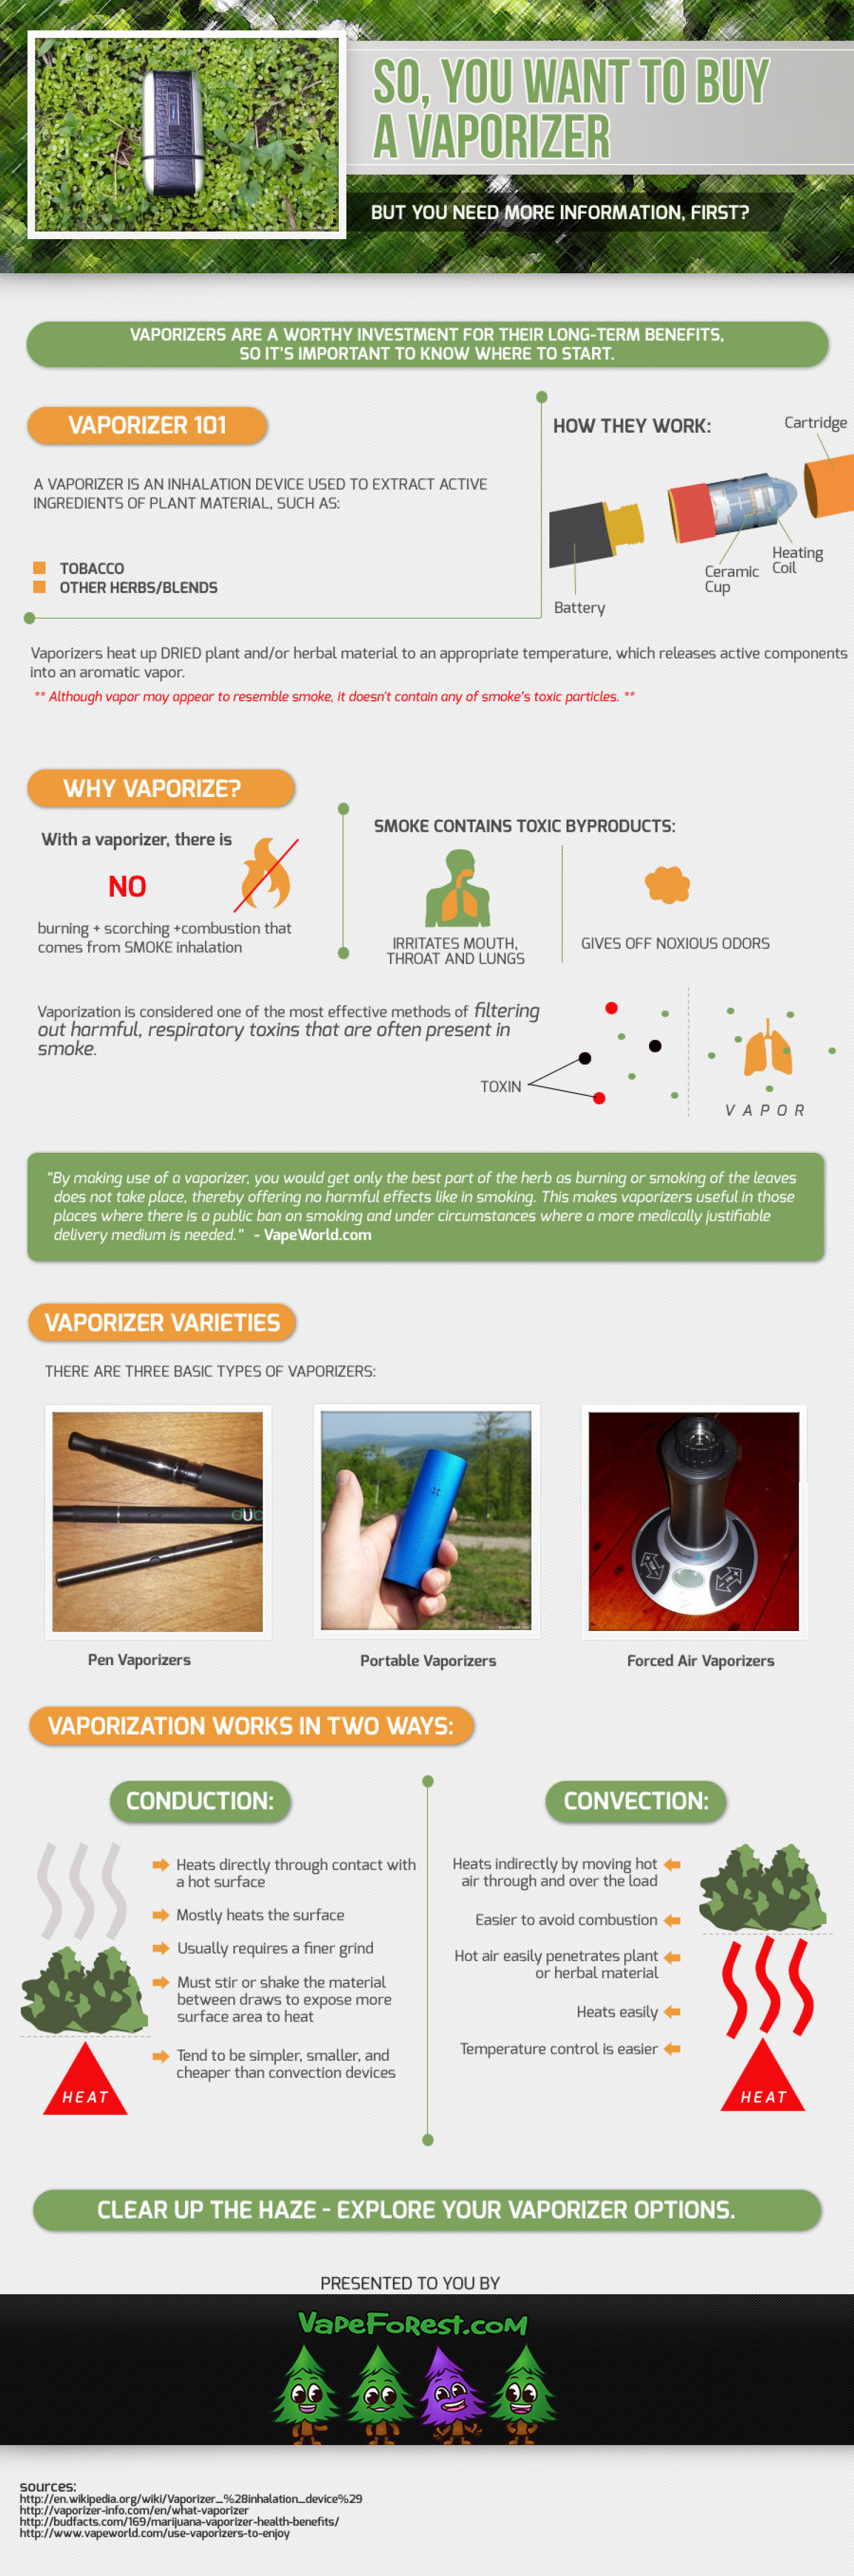 So, you want to buy a vaporizer  Infographic